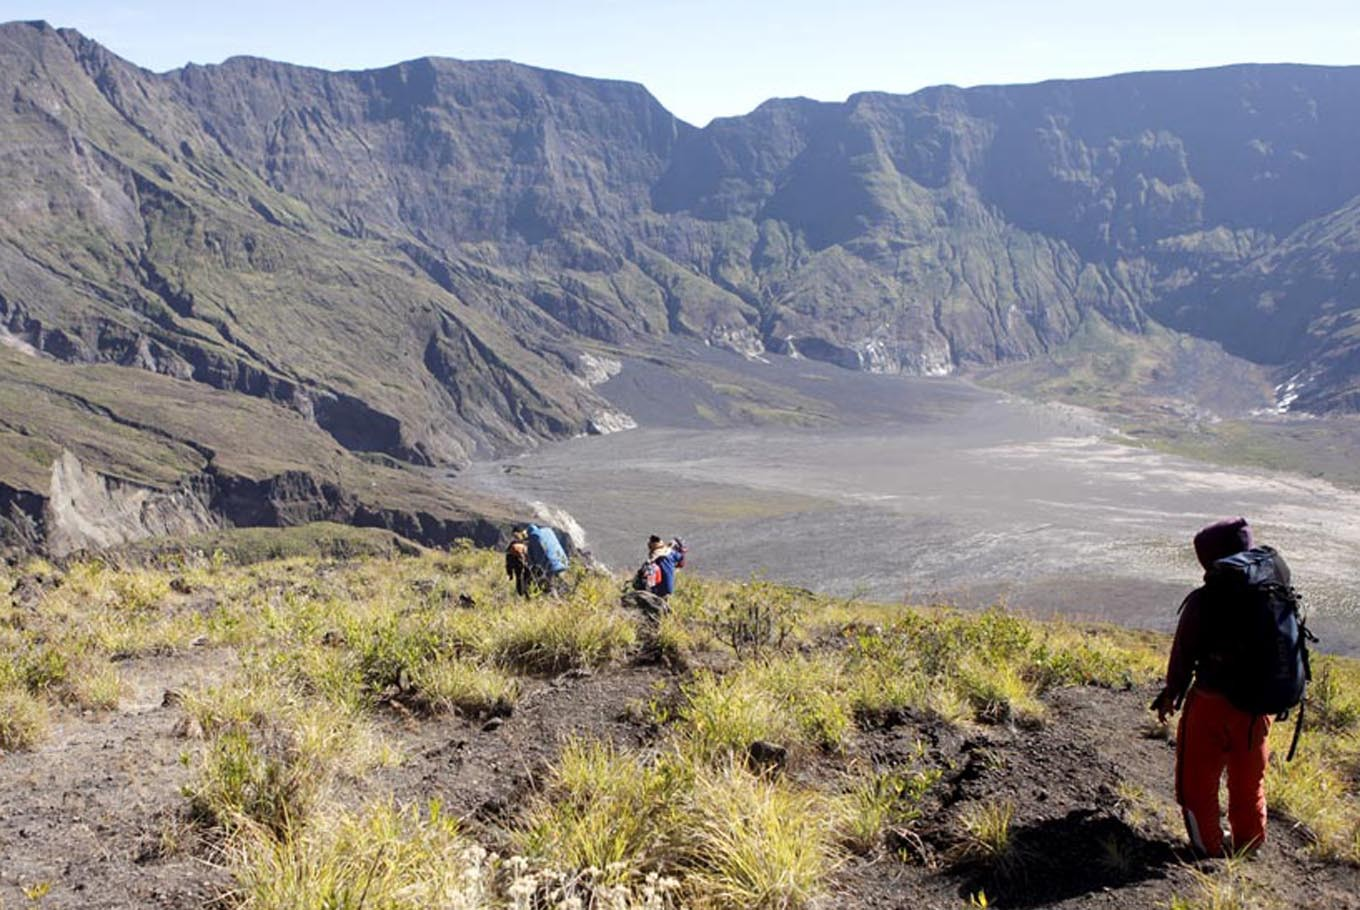 Book set to highlight 28 Indonesian mountain expeditions